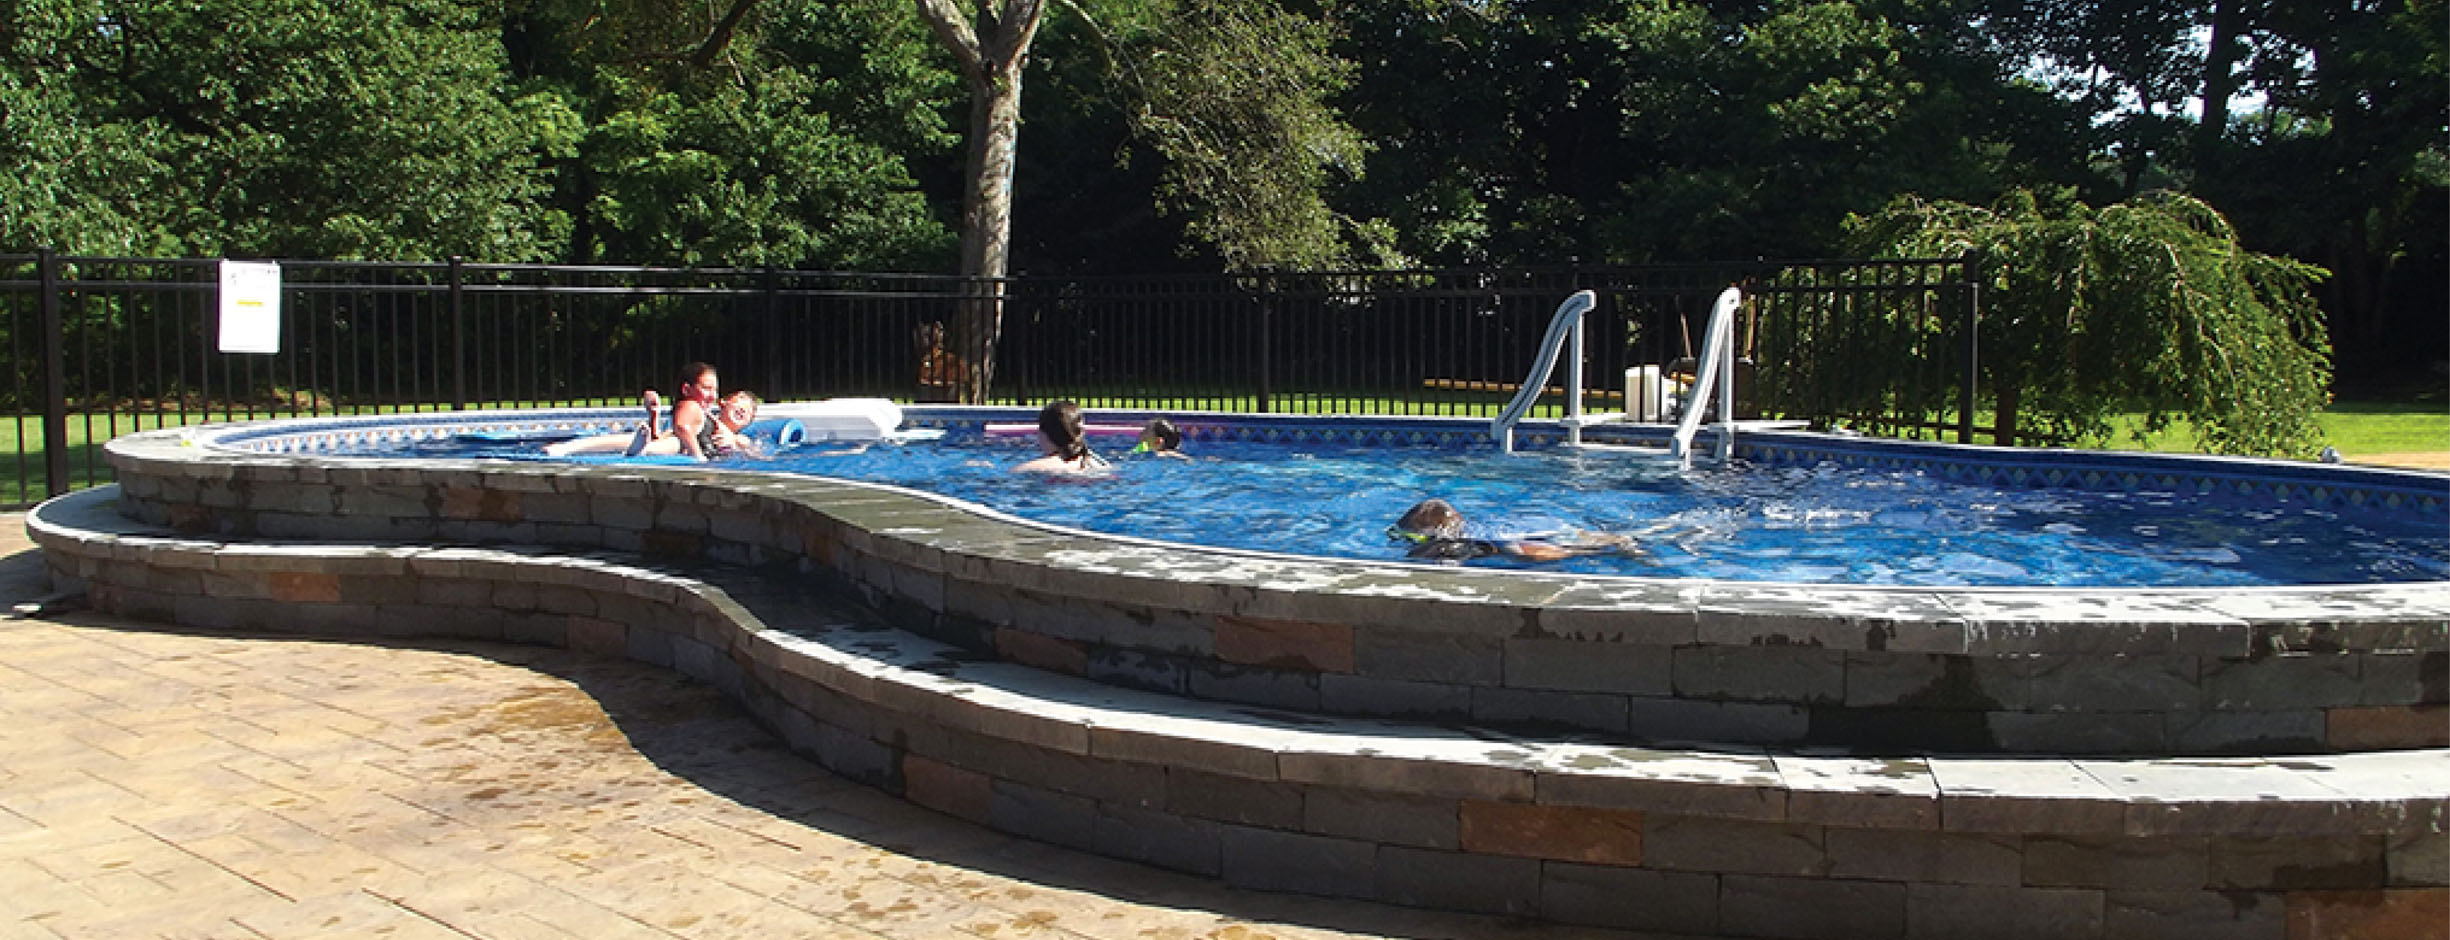 Above ground pools cryer pools spas inc - Above ground swimming pools reviews ...